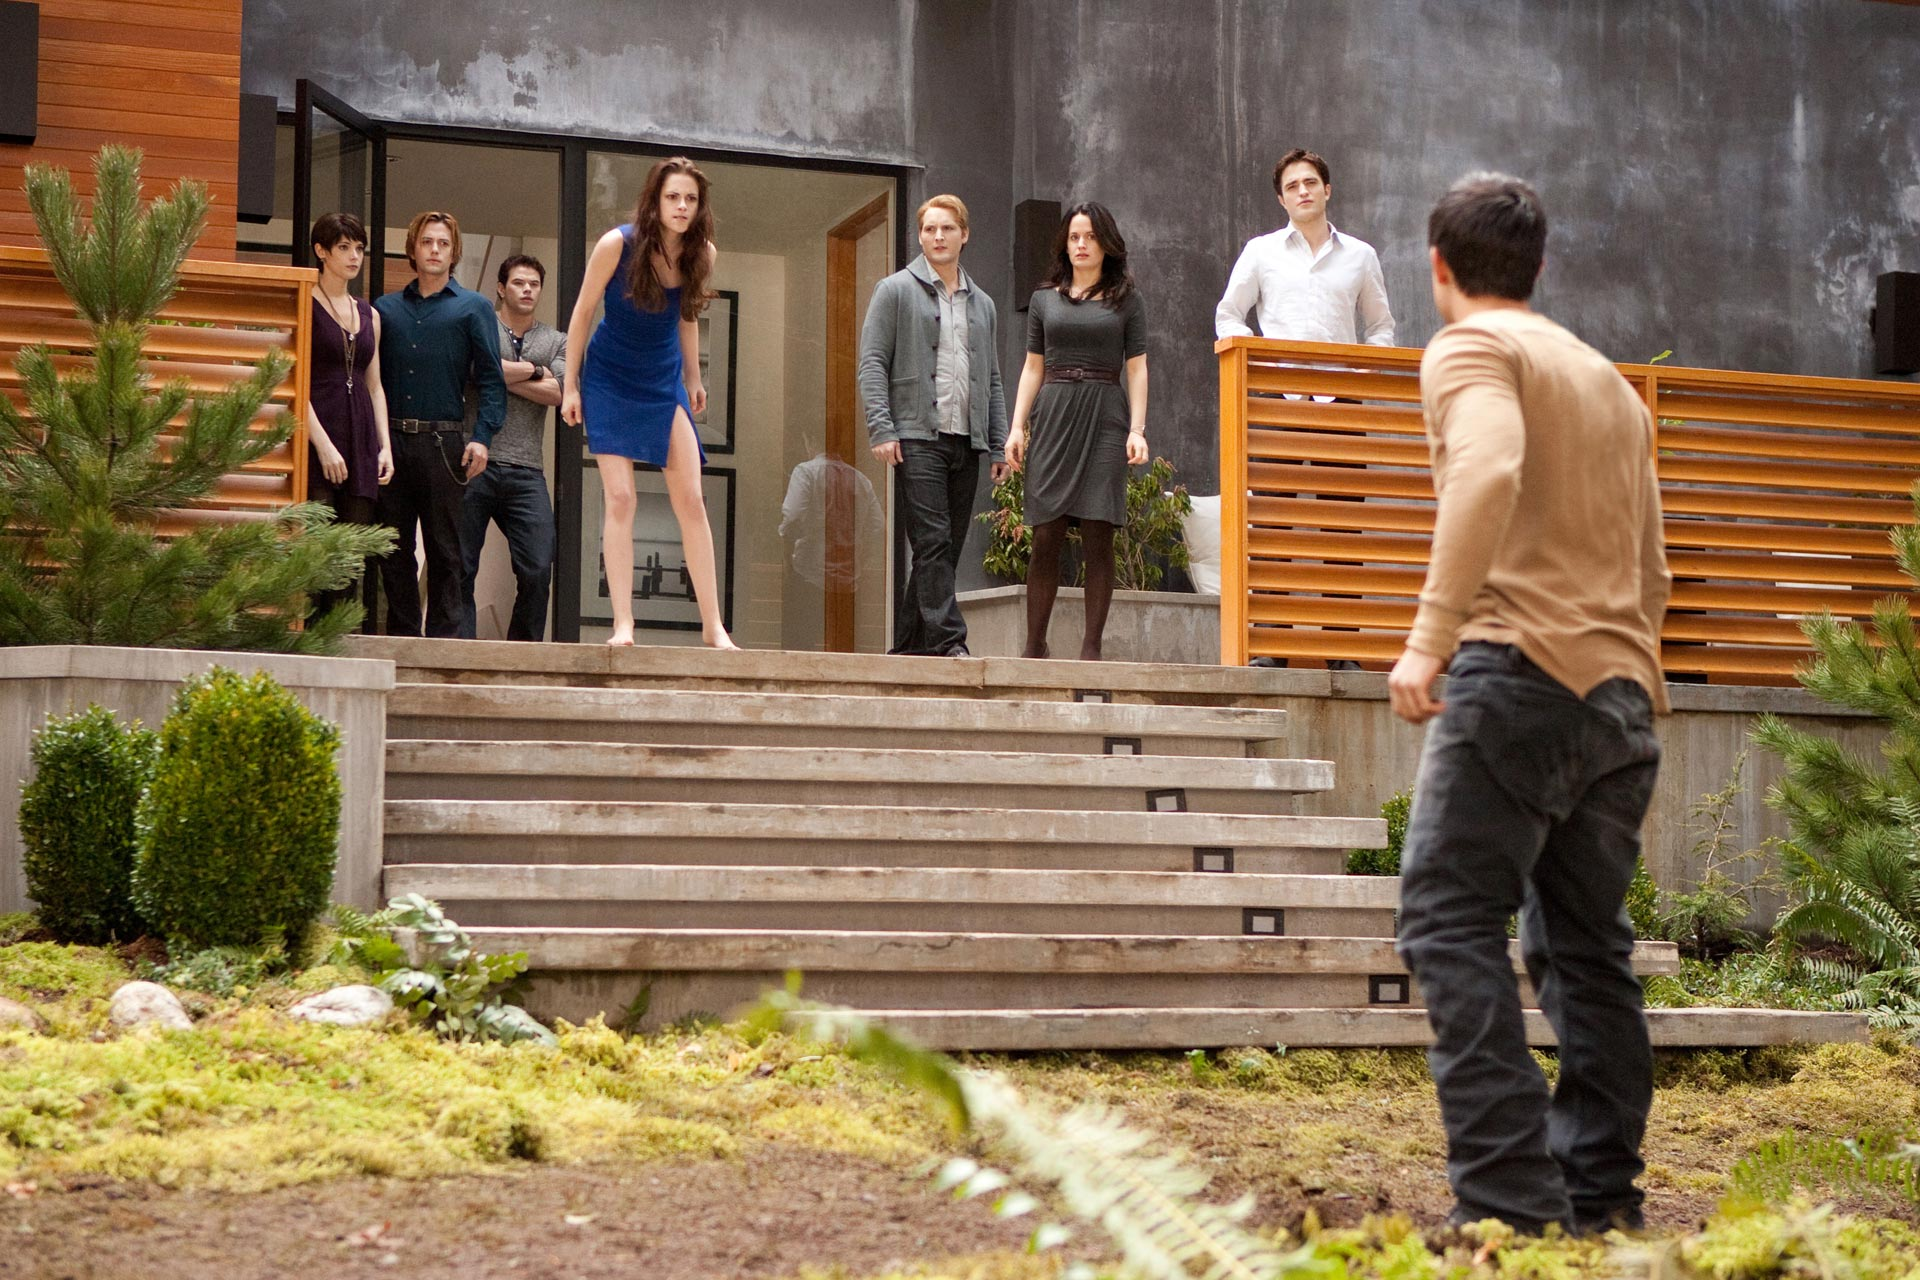 New The Twilight Saga Breaking Dawn Part 2 Stills сумерки серия романов фото 32788999 Fanpop